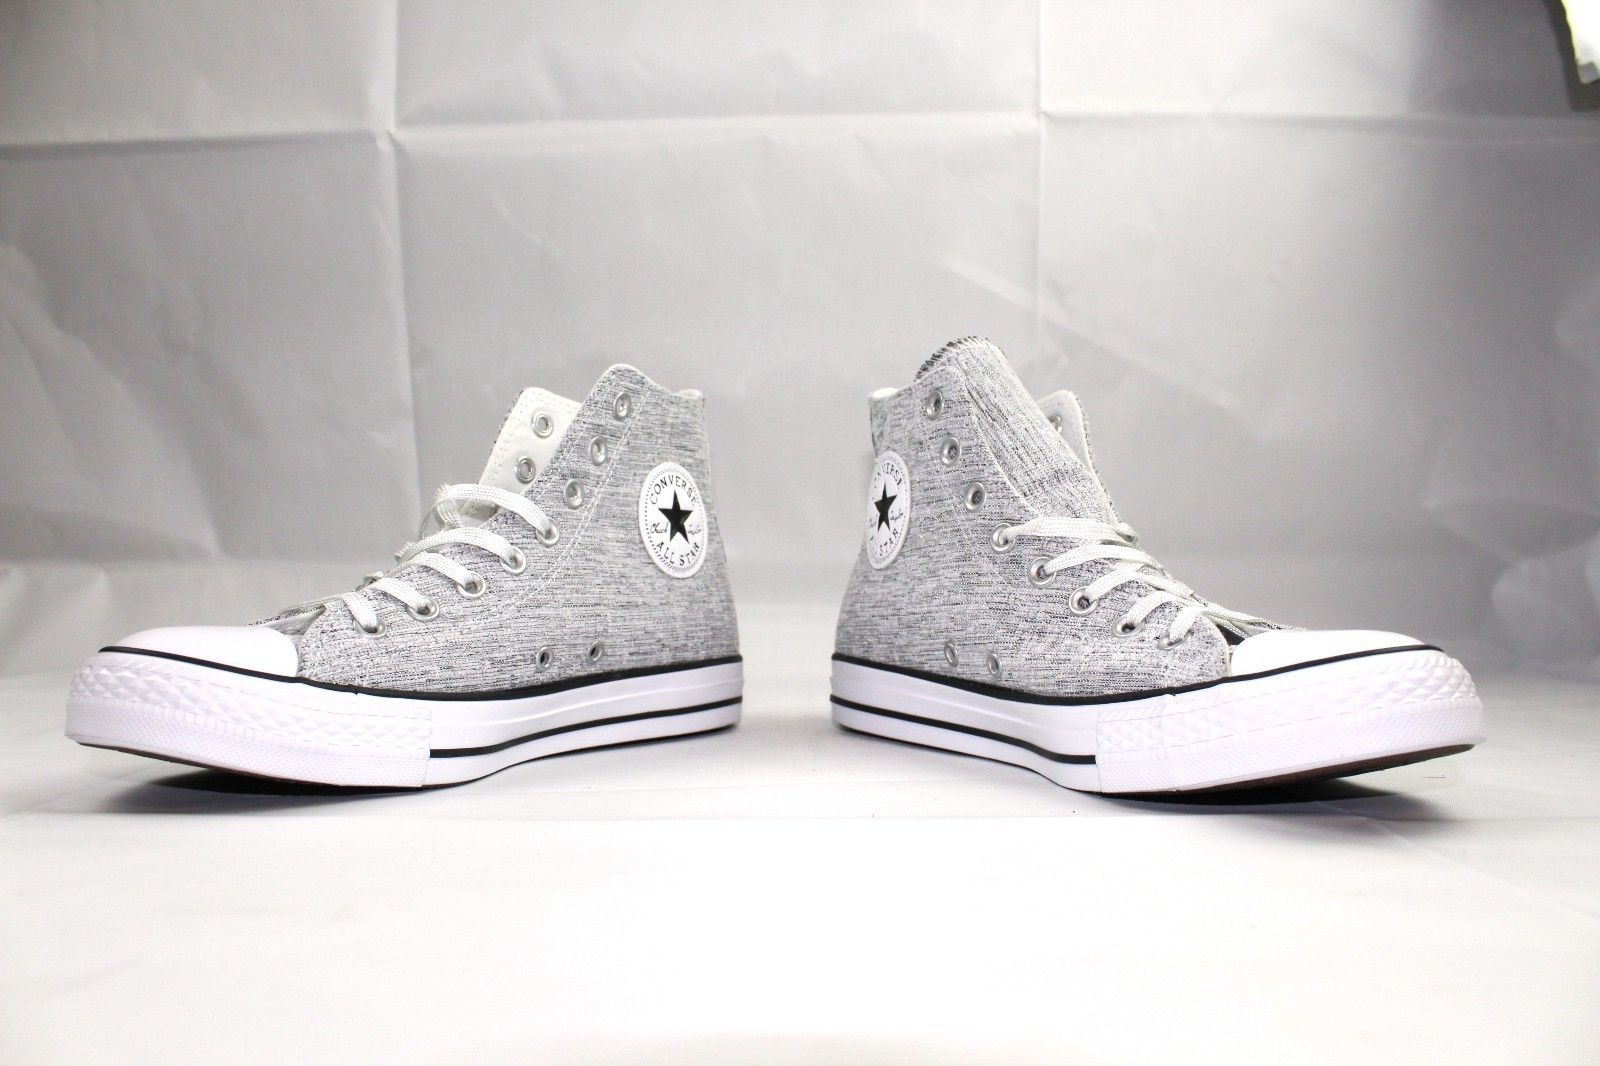 Converse Women's Chuck Taylor All Star High Top Sneakers A729673